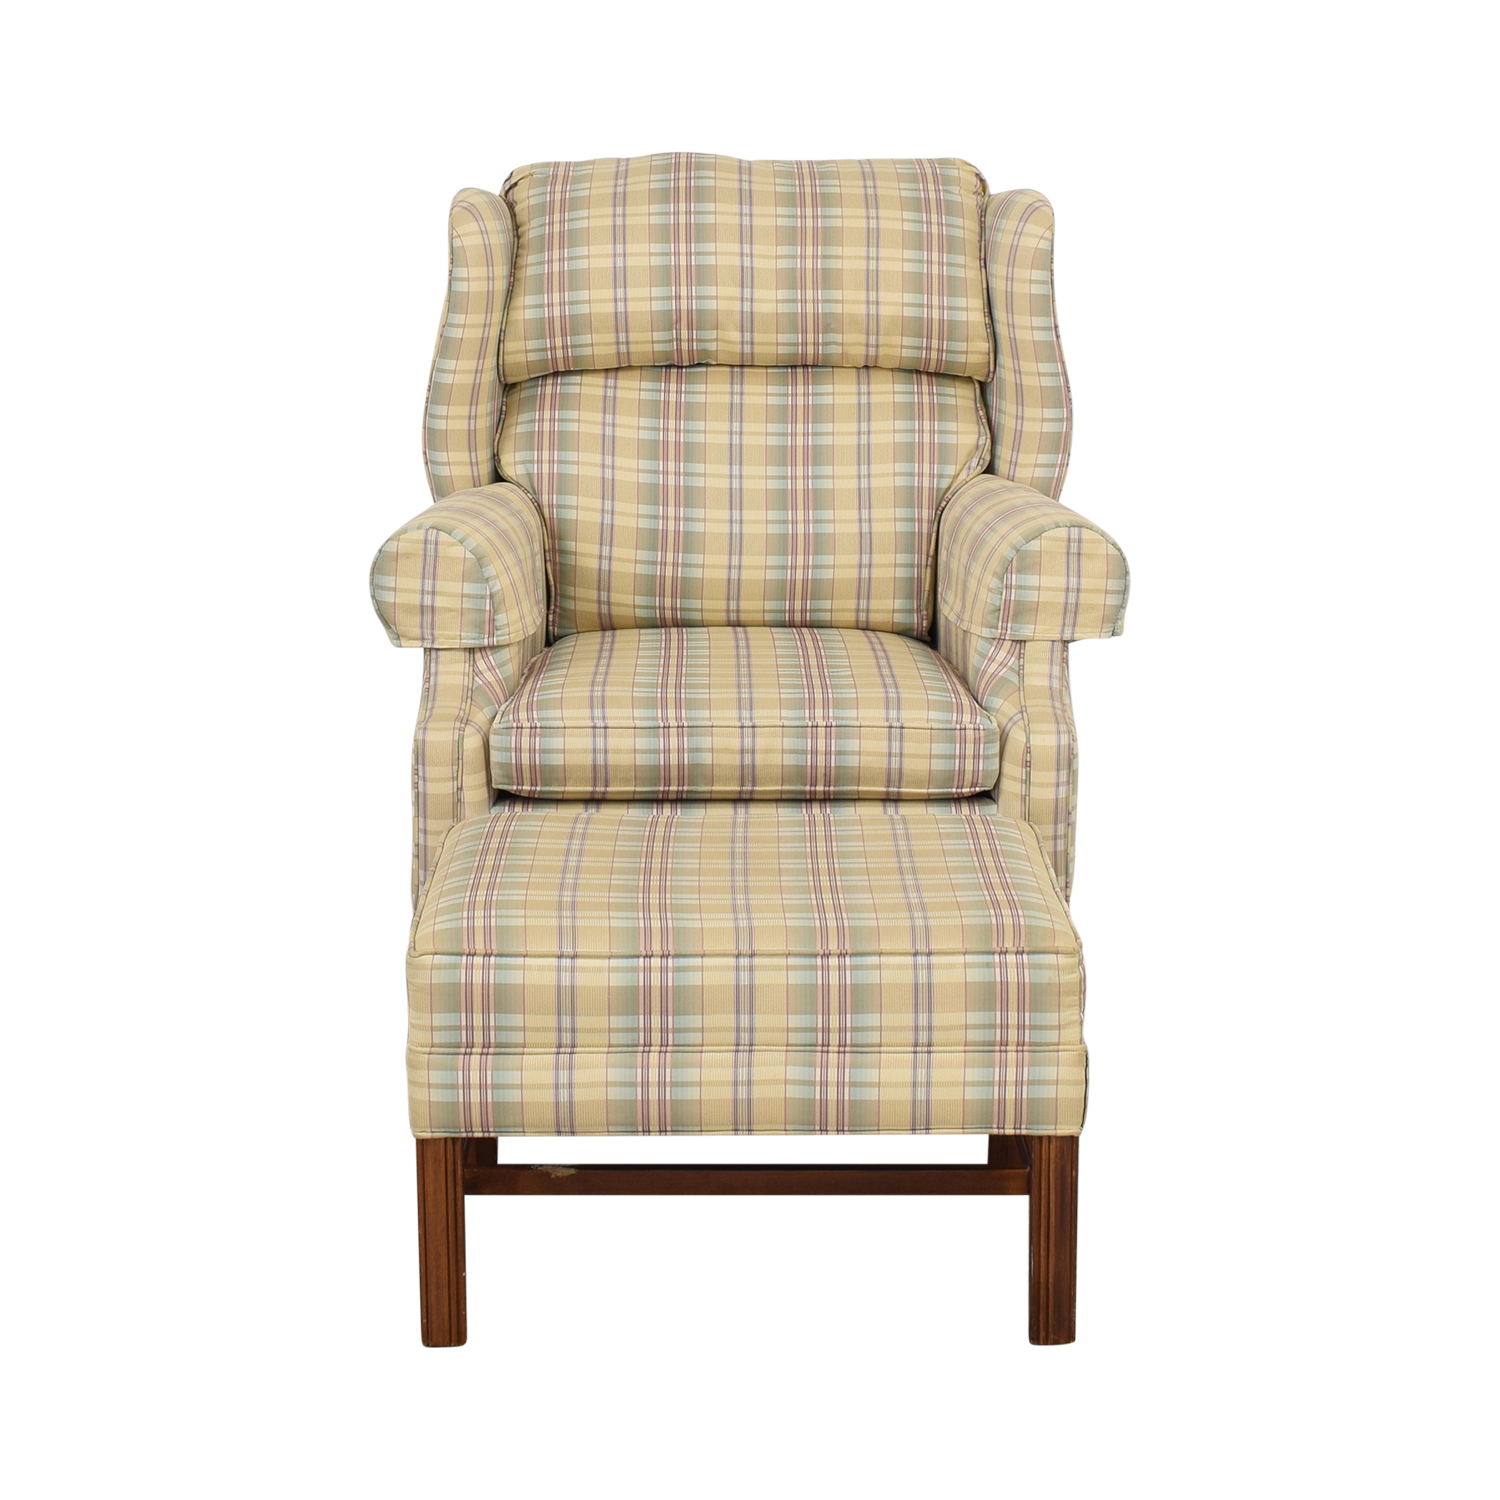 buy Ethan Allen Plaid Wingback Chair and Ottoman Ethan Allen Chairs